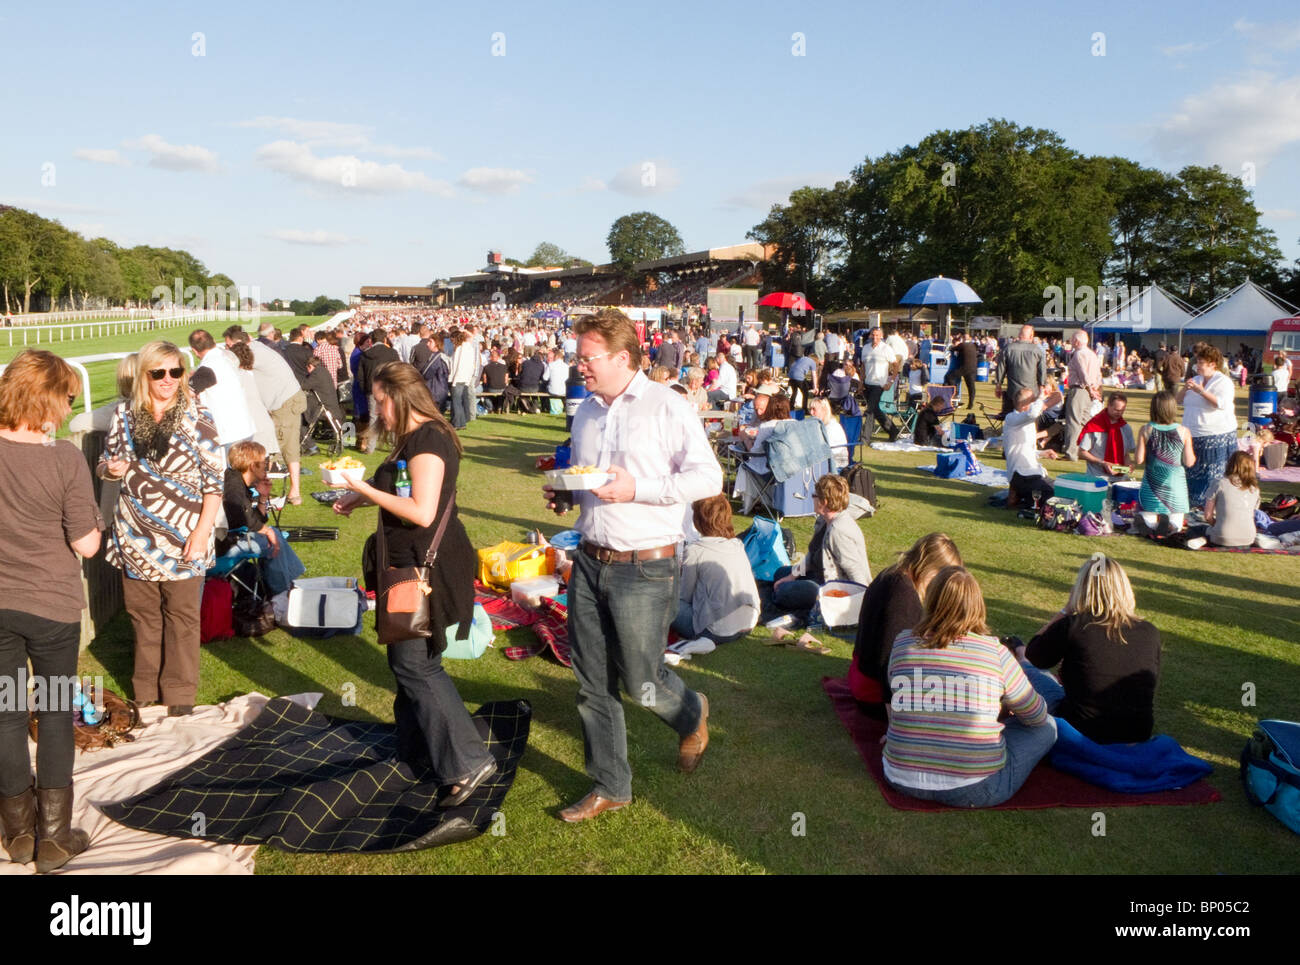 Crowds on a sunny evening at the races, July Racecourse, Newmarket Suffolk, UK - Stock Image